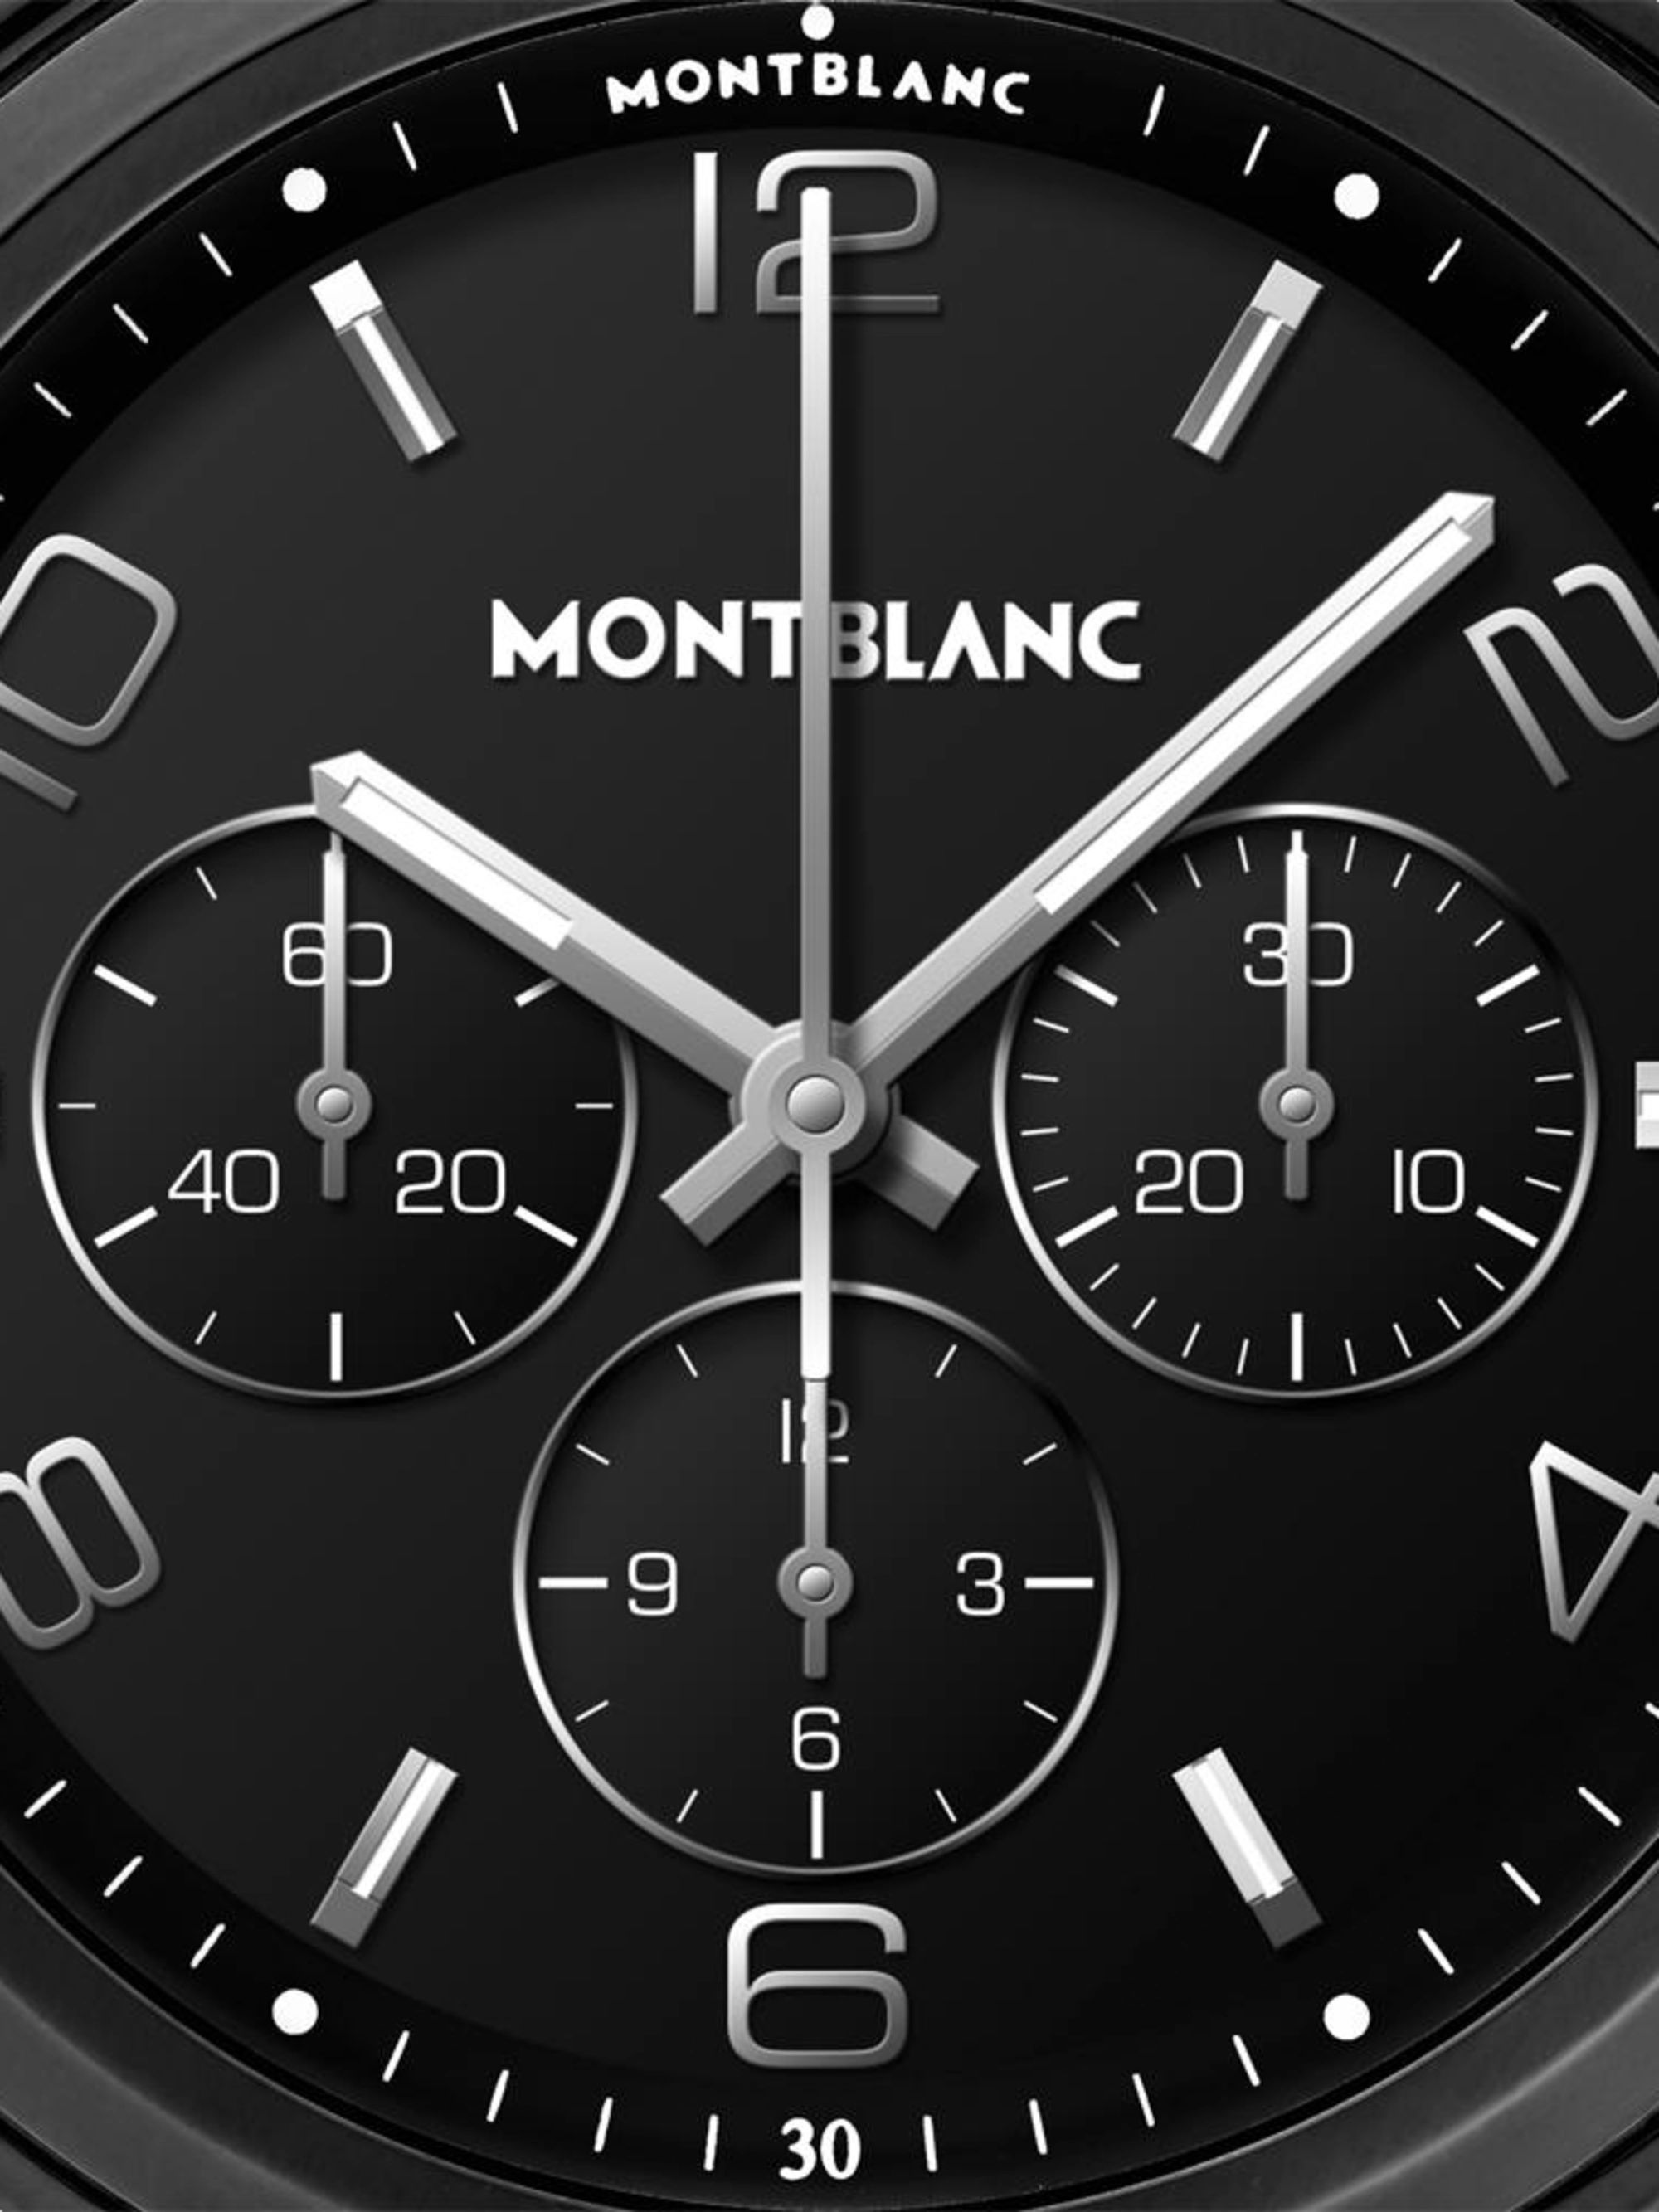 Montblanc Summit 2+ 43.5mm DLC-Coated Stainless Steel and Rubber Smart Watch, Ref. No. 127650